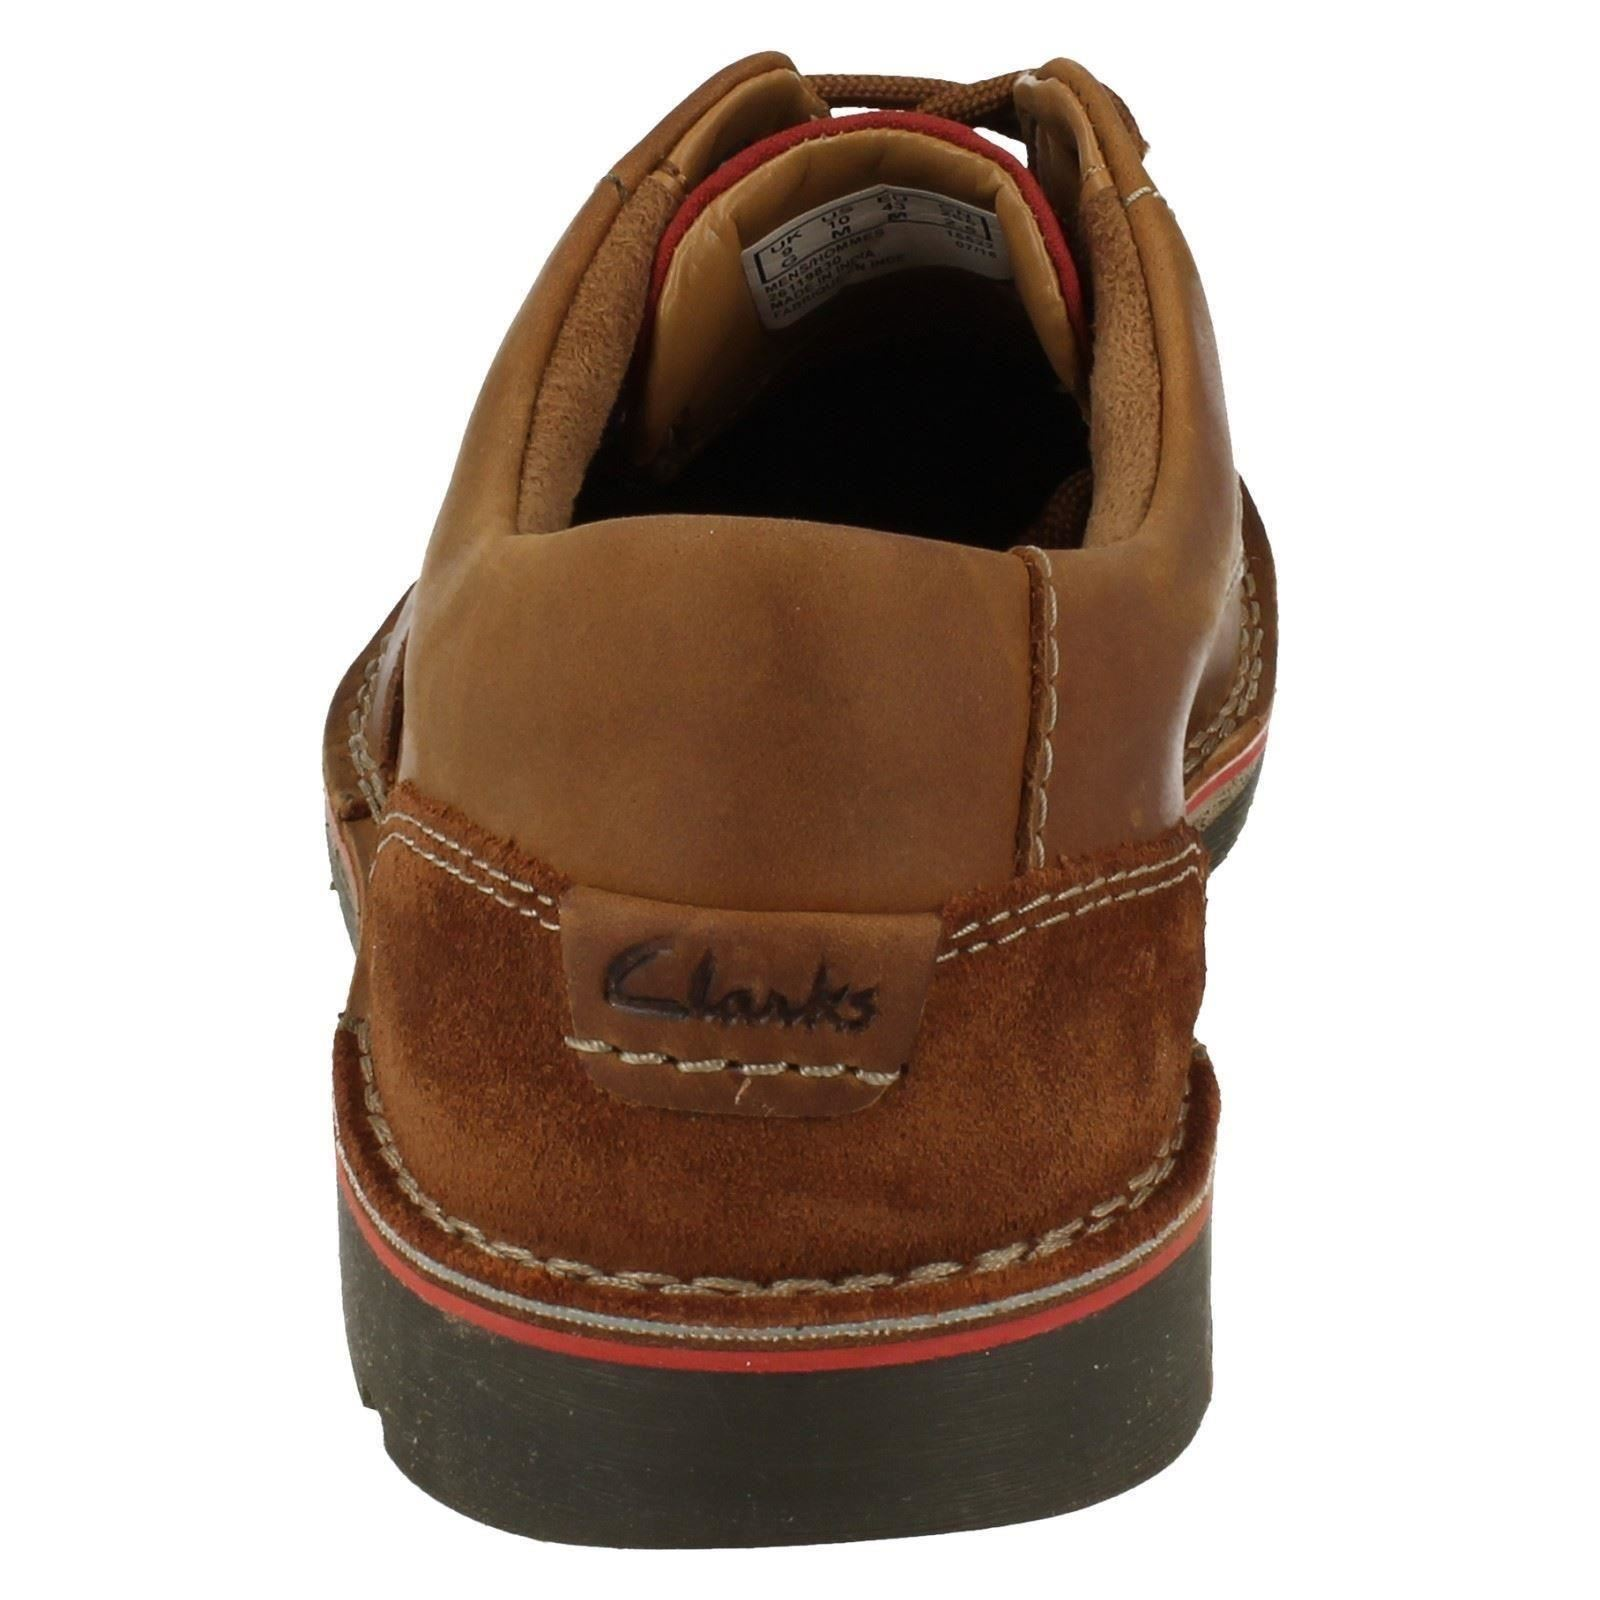 ' Uomo Schuhes Clarks' Casual Lace Up Schuhes Uomo Edgewick Plain 53ec97